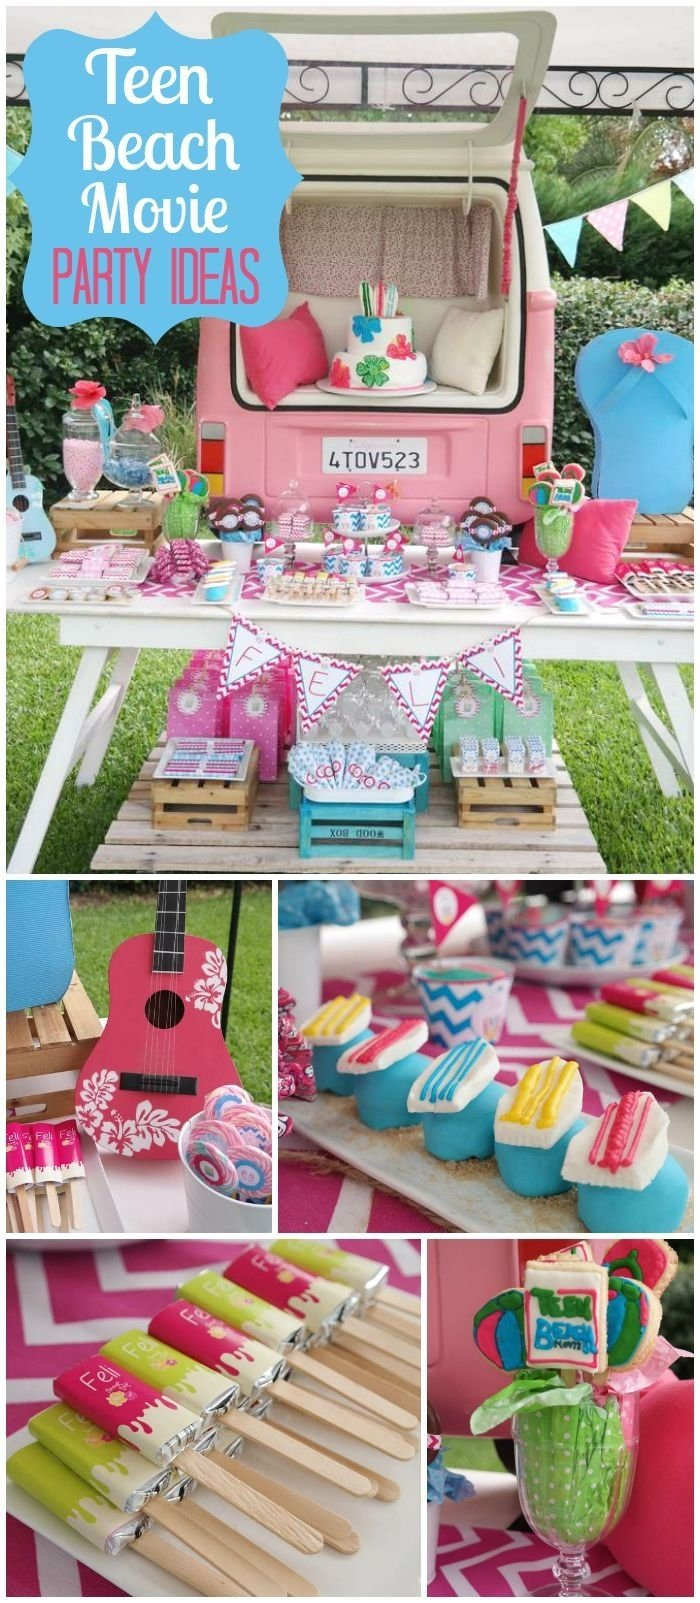 10 Unique Ideas For Teenage Birthday Parties 128 best 11th bday images on pinterest birthdays party ideas and 2 2020